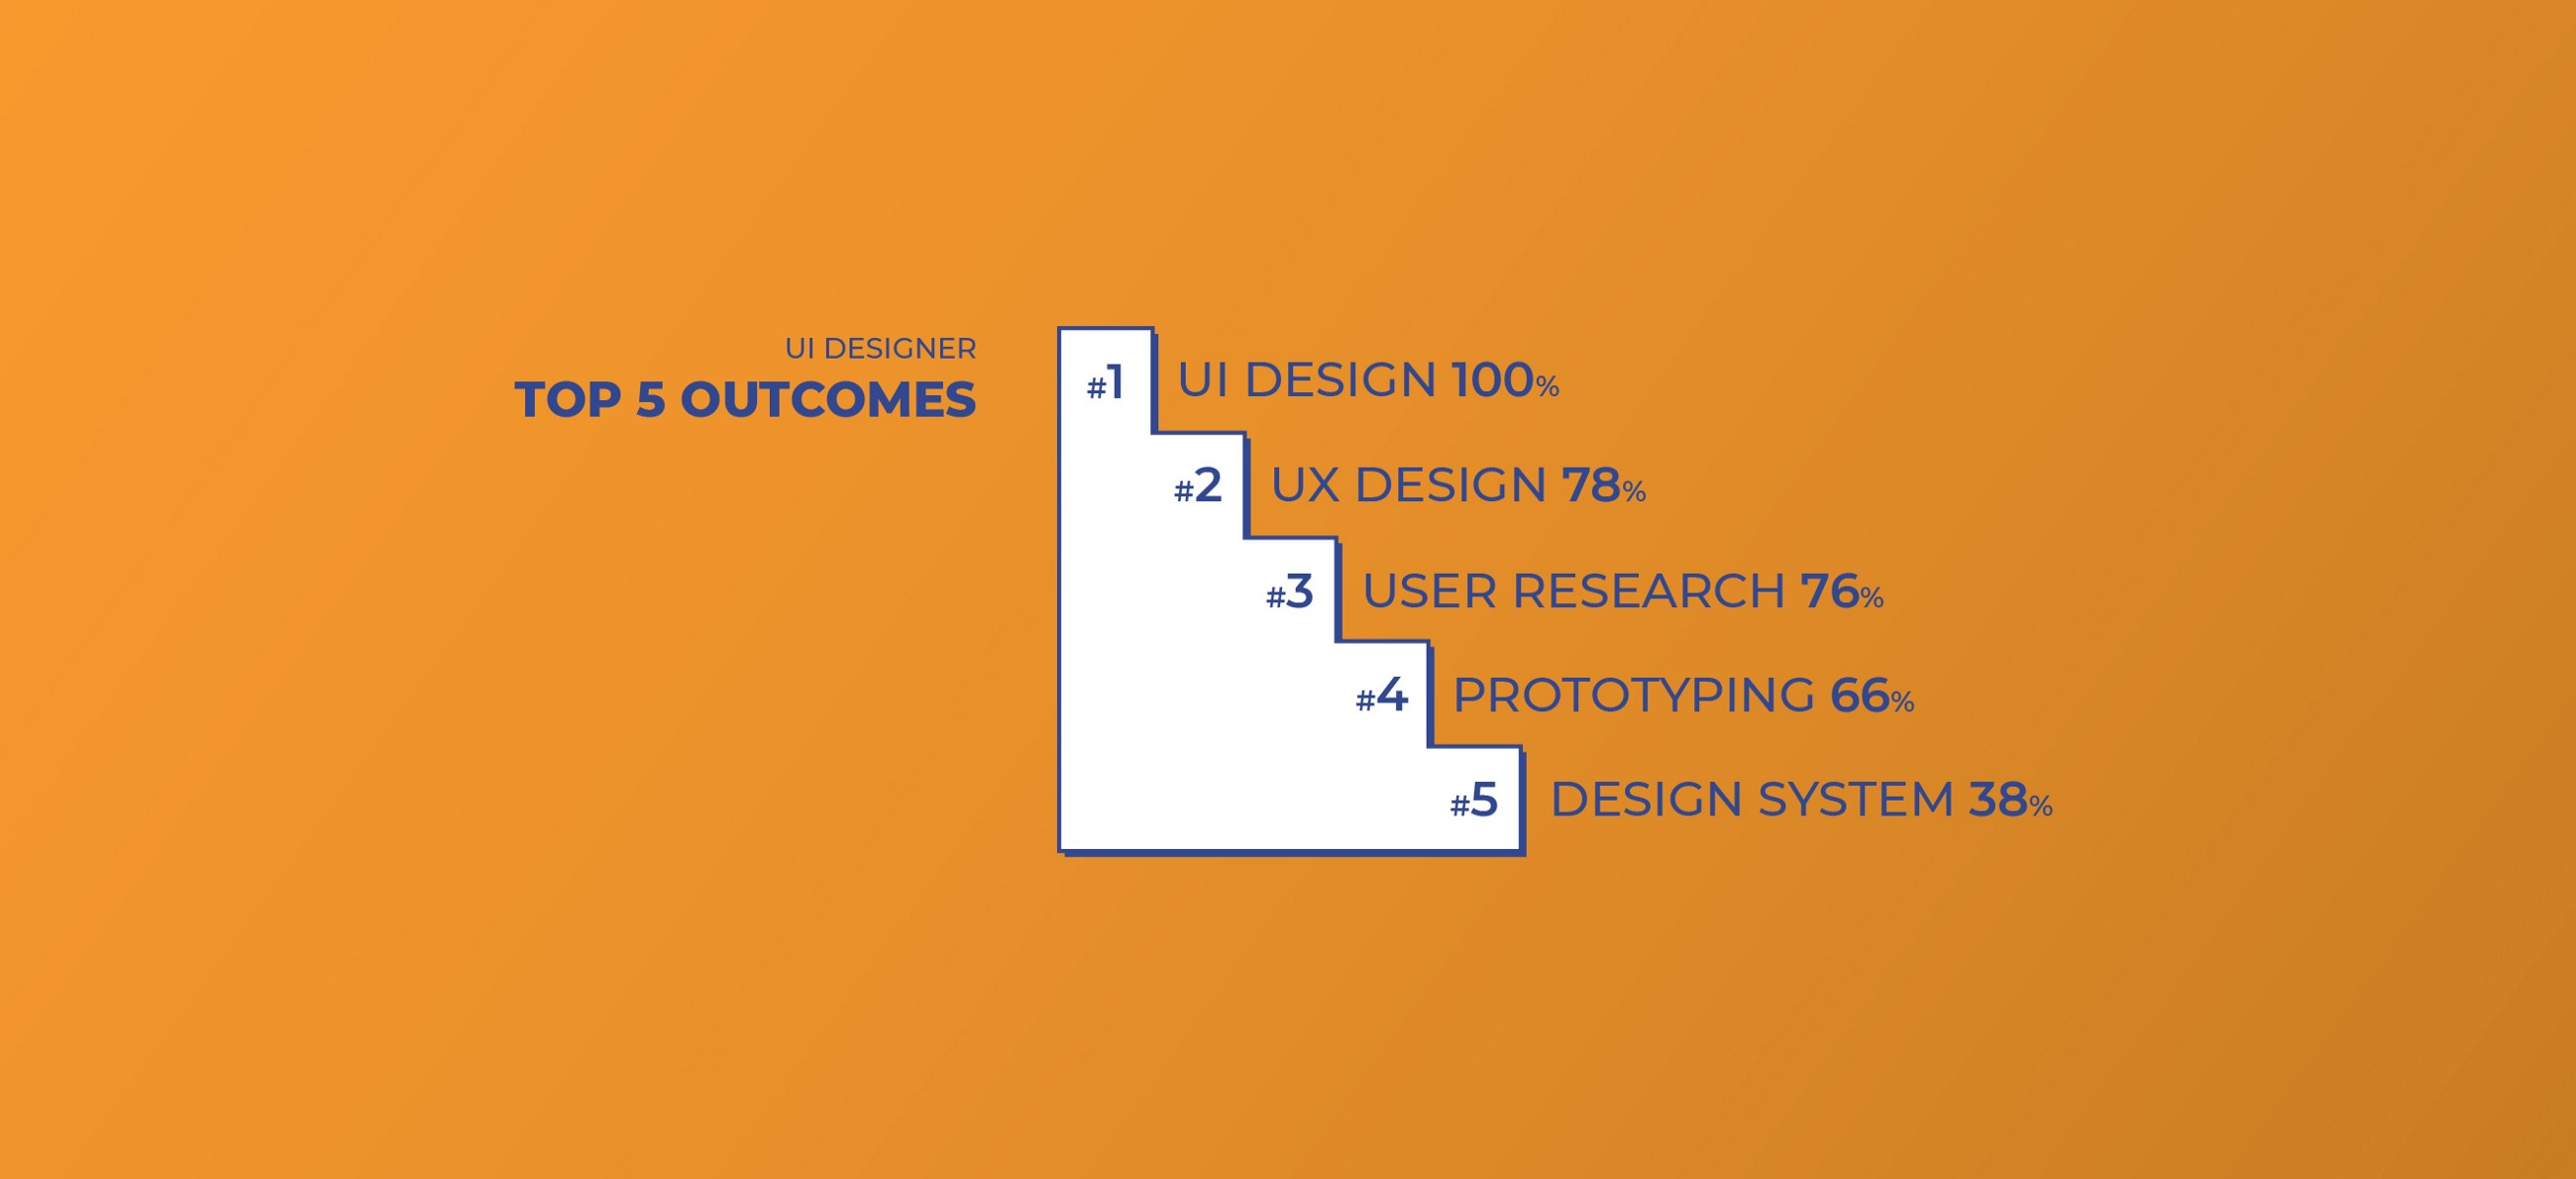 Top 5 Outcomes for UI Designers: UI, UX, User Research, Prototyping, Design system